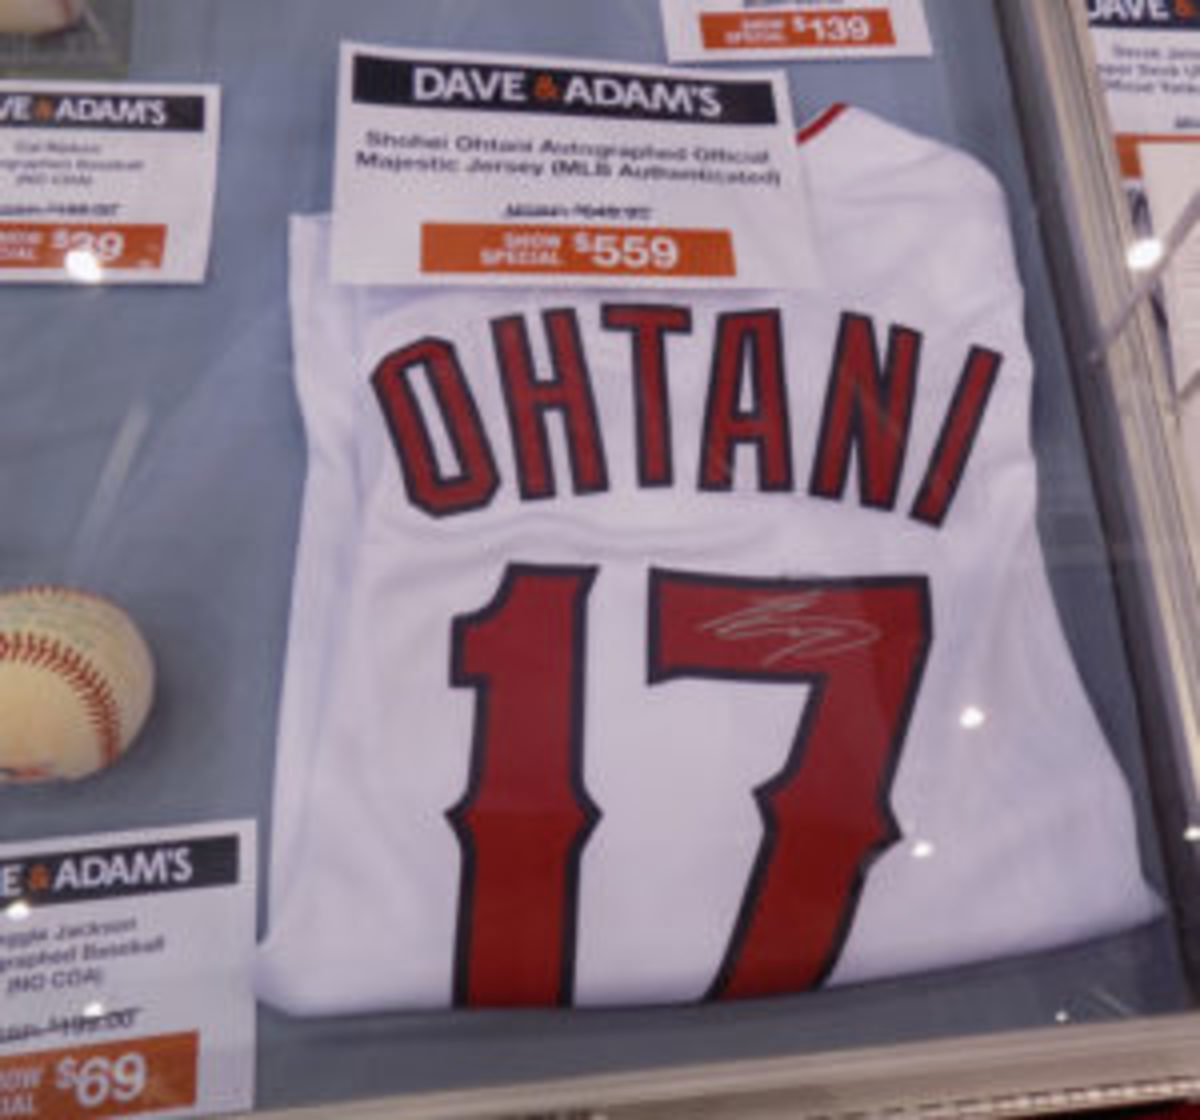 An autographed Shohei Ohtani jersey was available at the National for $559. (Barry Blair photo)